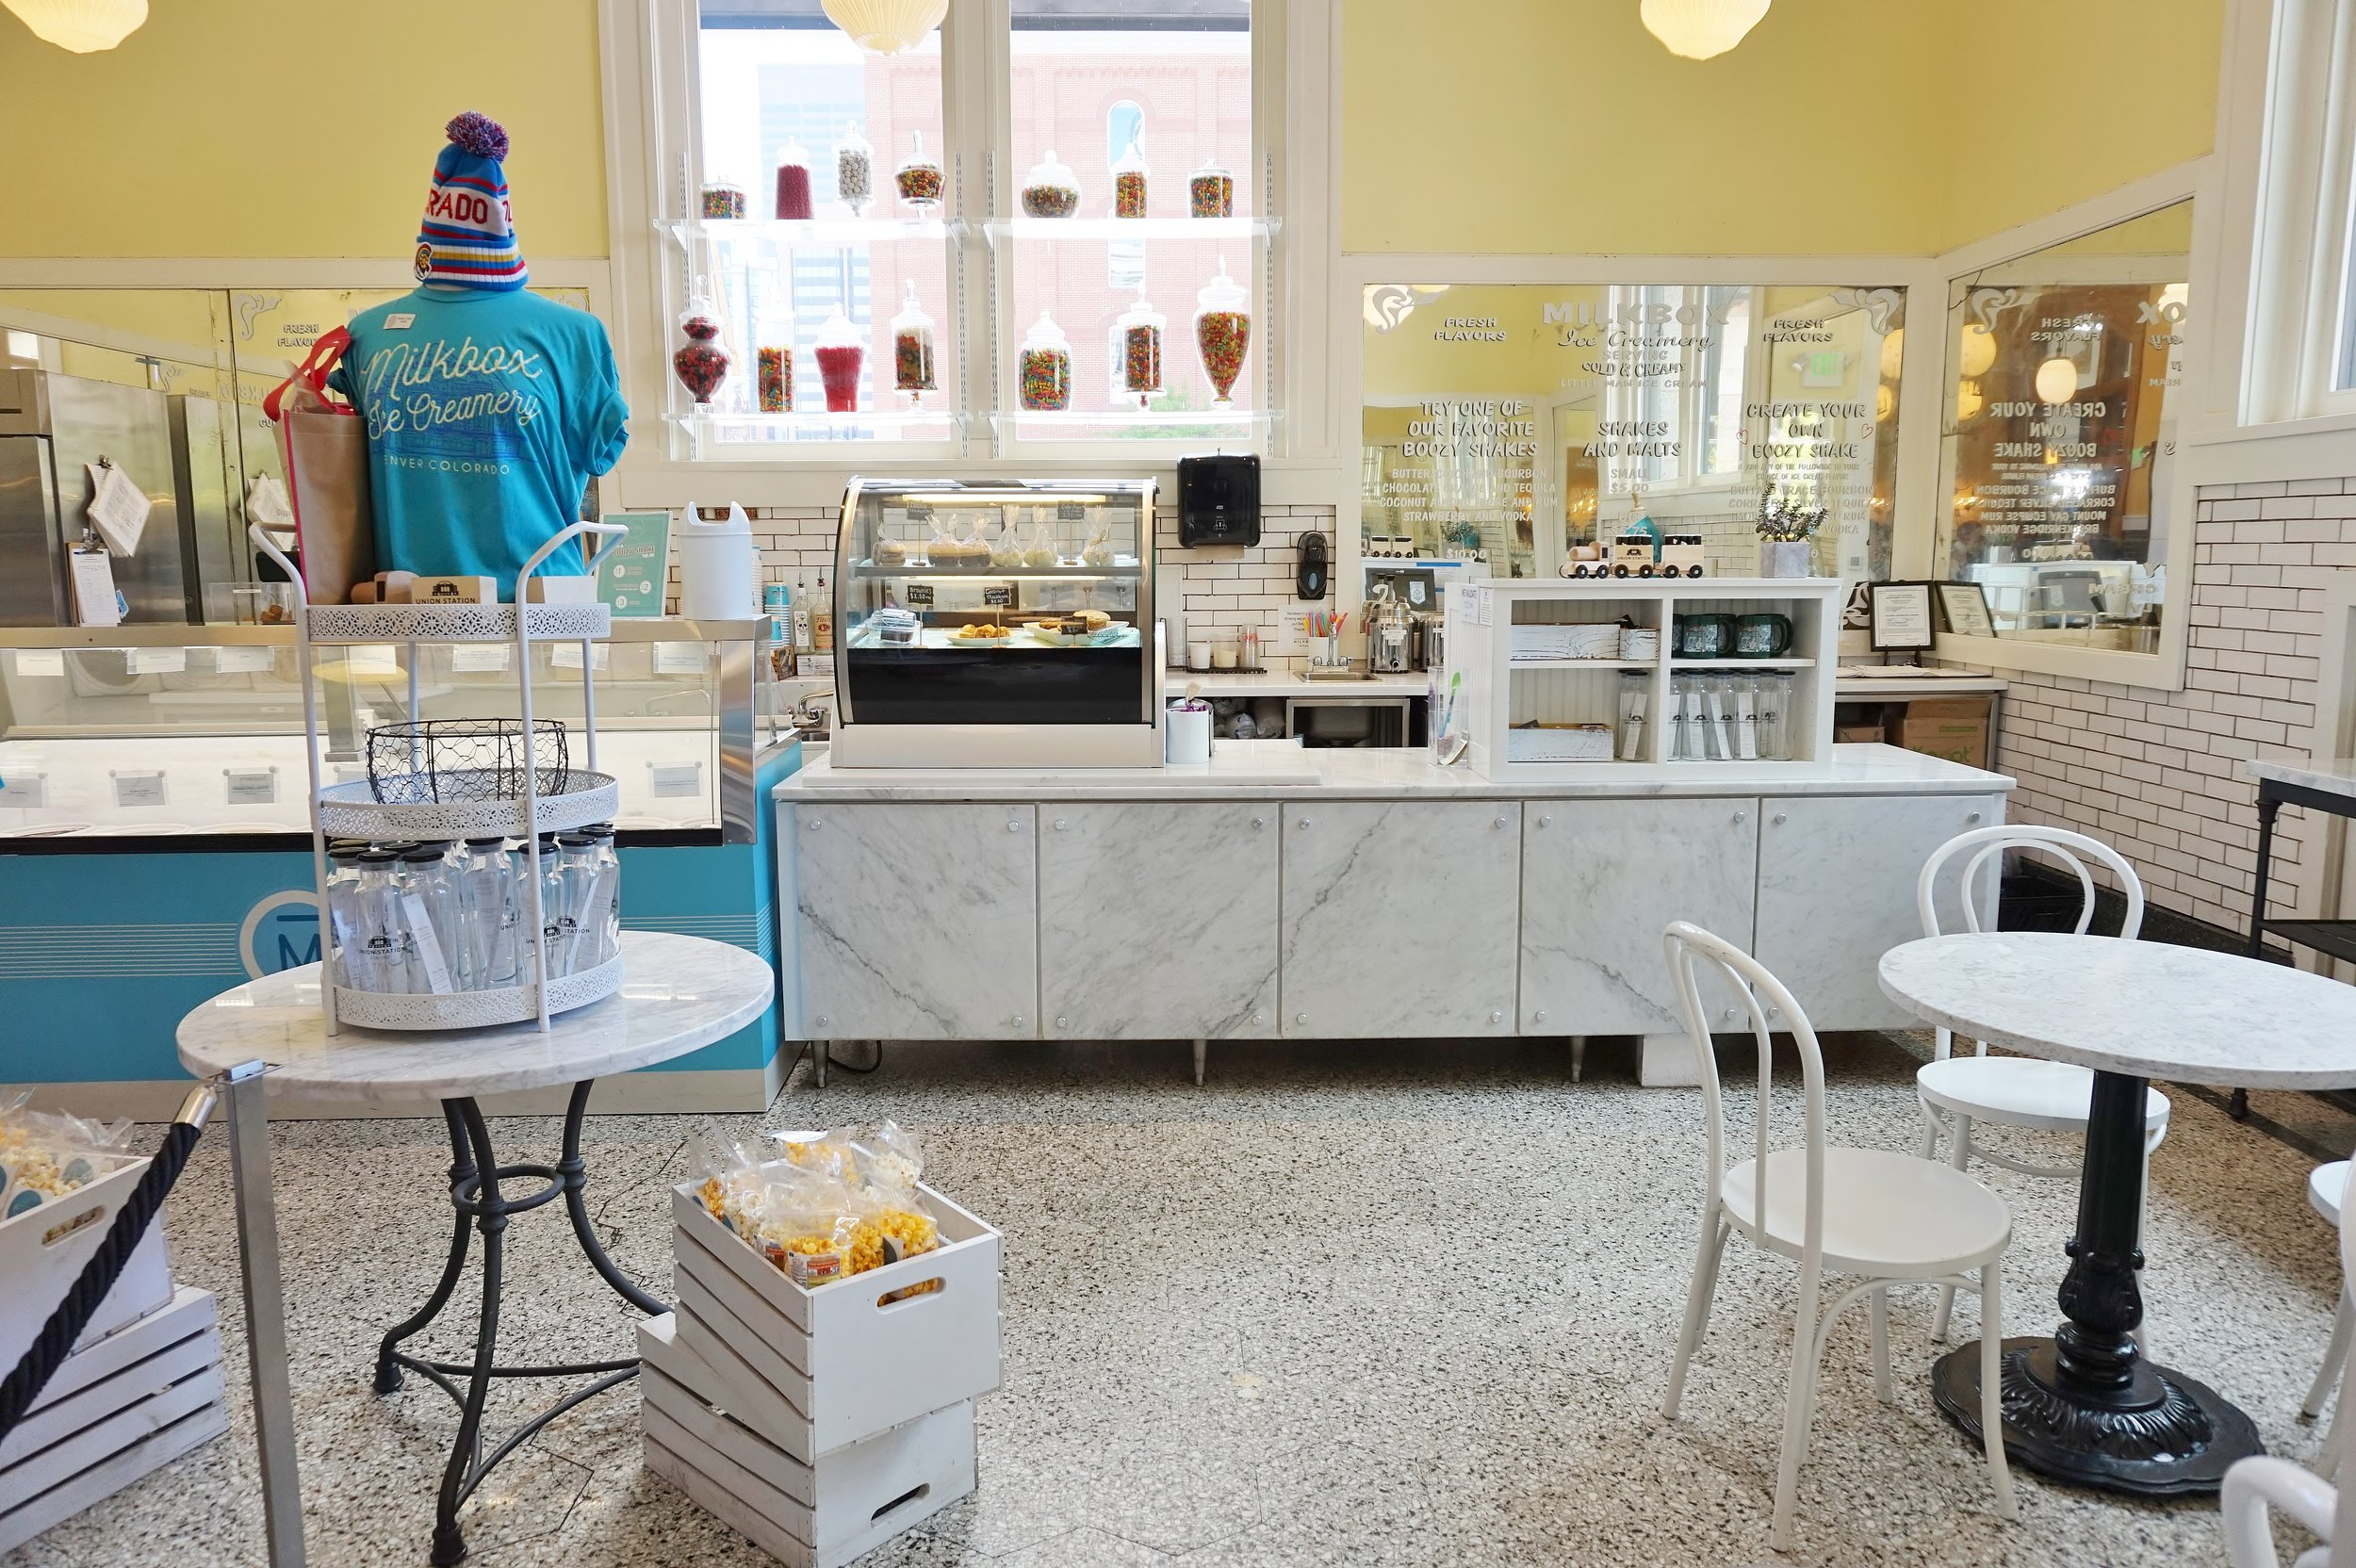 Ice Cream shop | The Crawford Hotel at Union Station, Denver